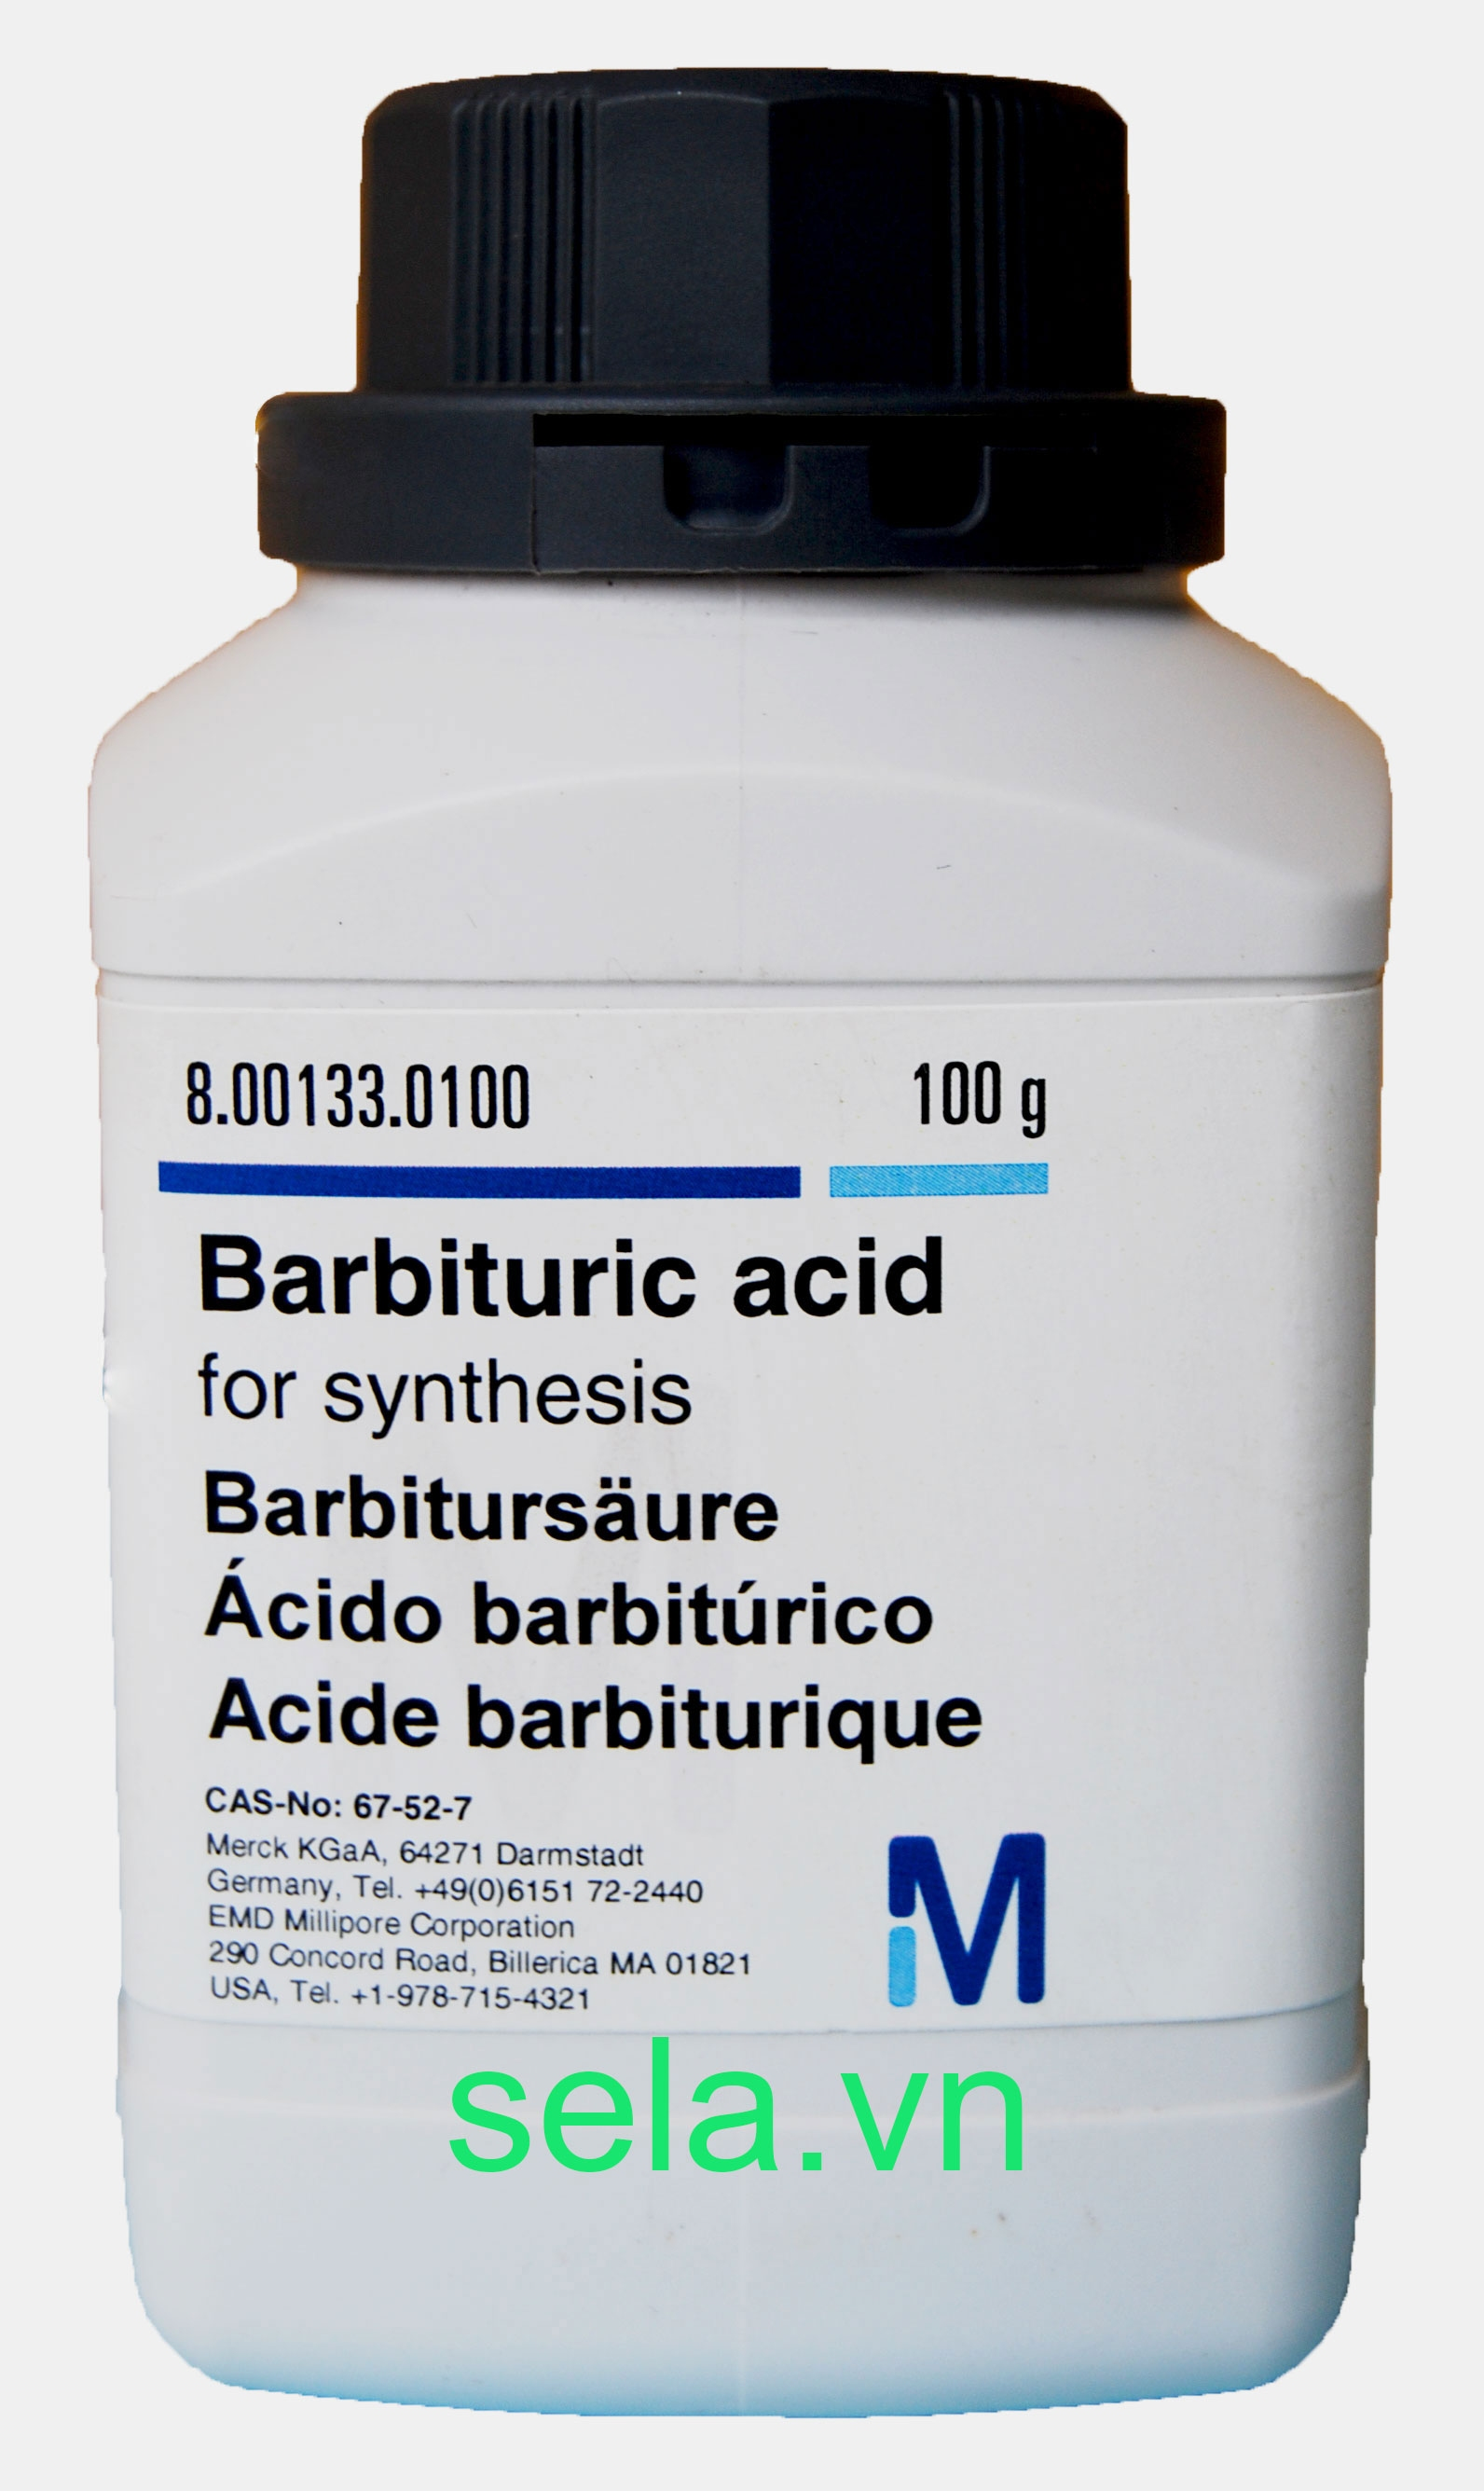 Barbituric acid for synthesis